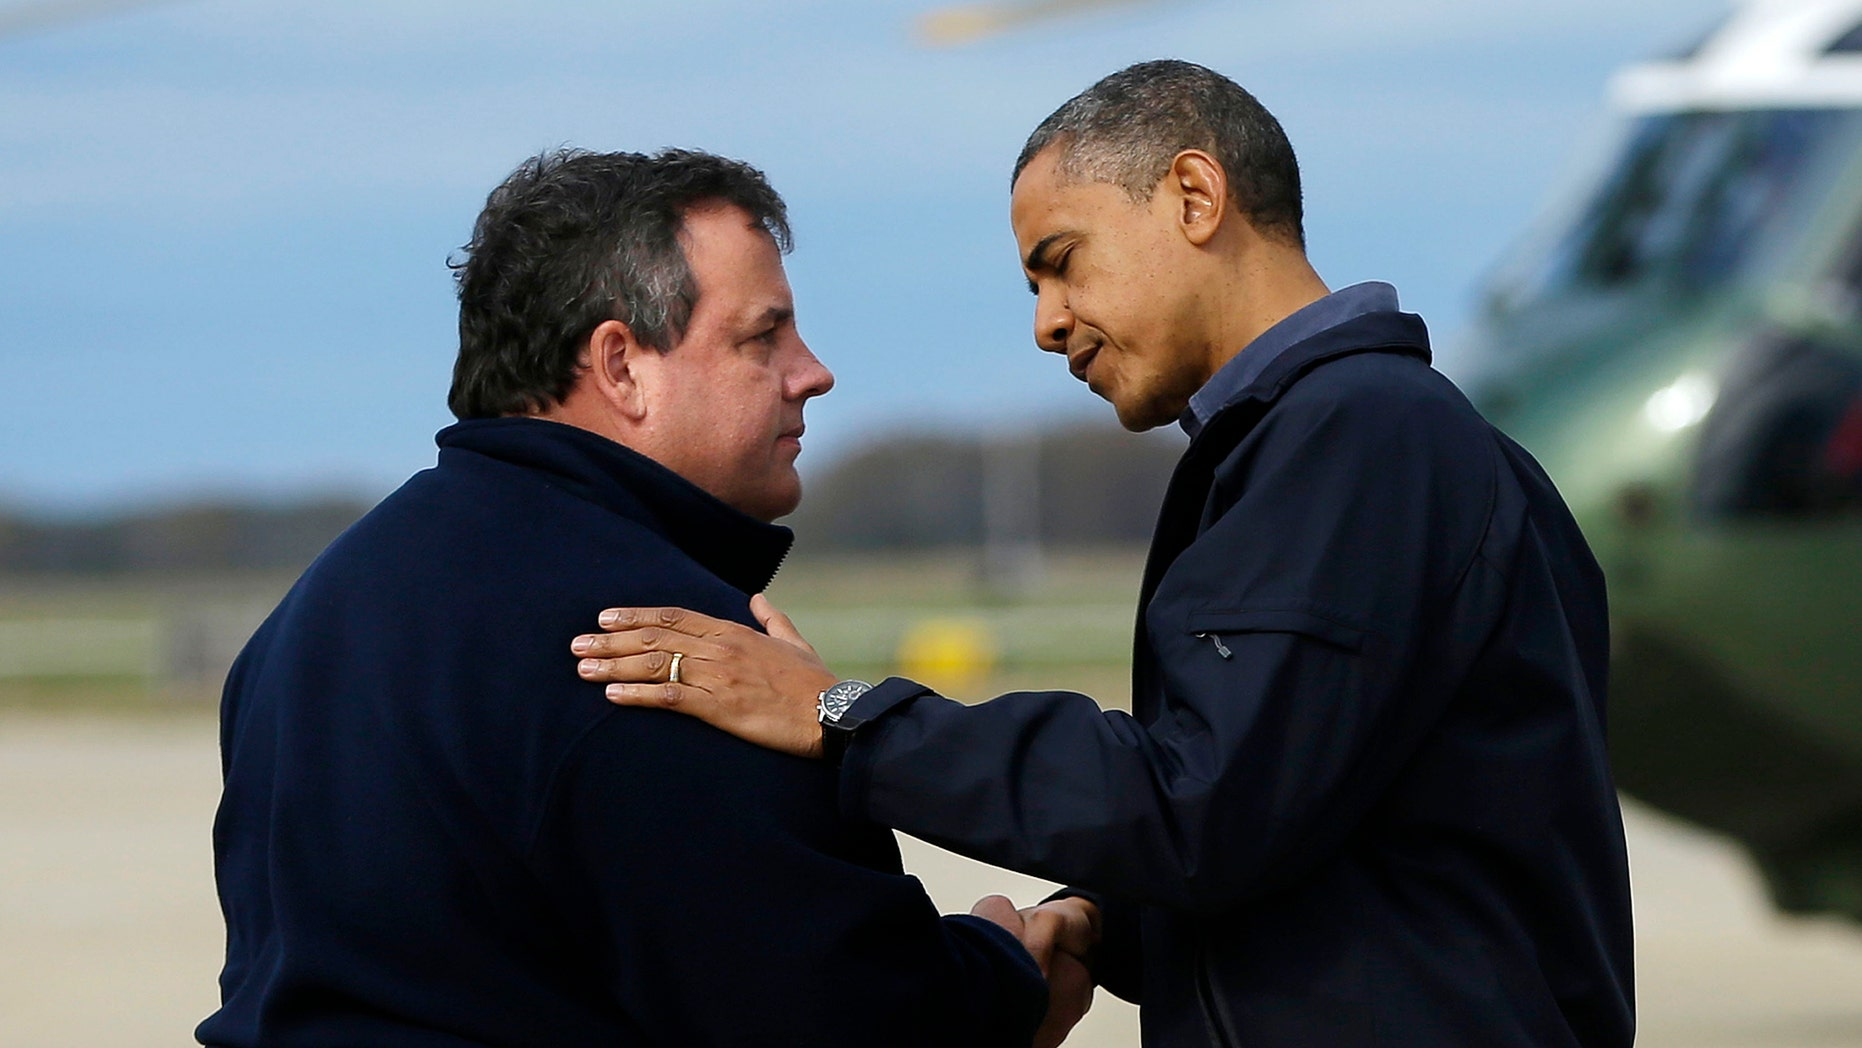 Oct. 31, 2012: President Barack Obama is greeted by New Jersey Gov. Chris Christie upon his arrival at Atlantic City International Airport, in Atlantic City, NJ.